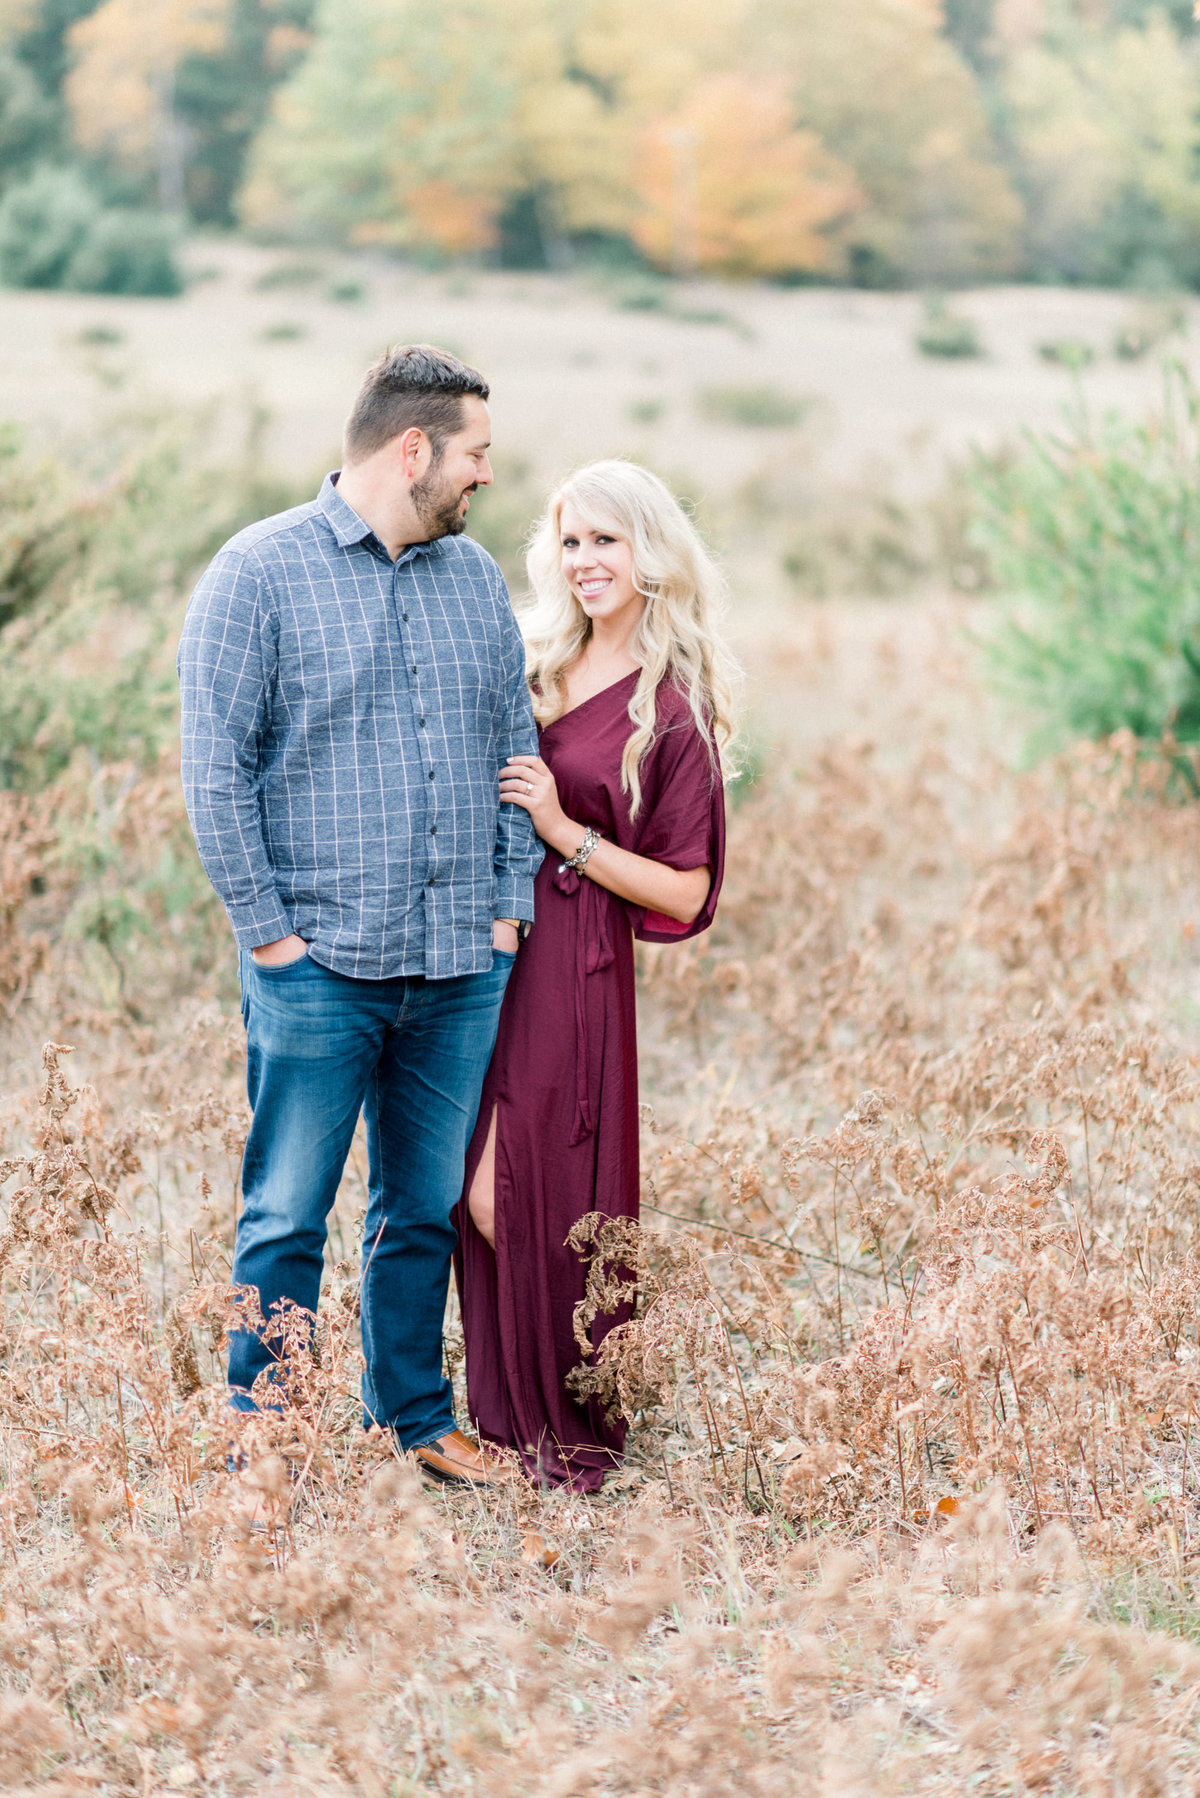 Traverse city Michigan engagement photography